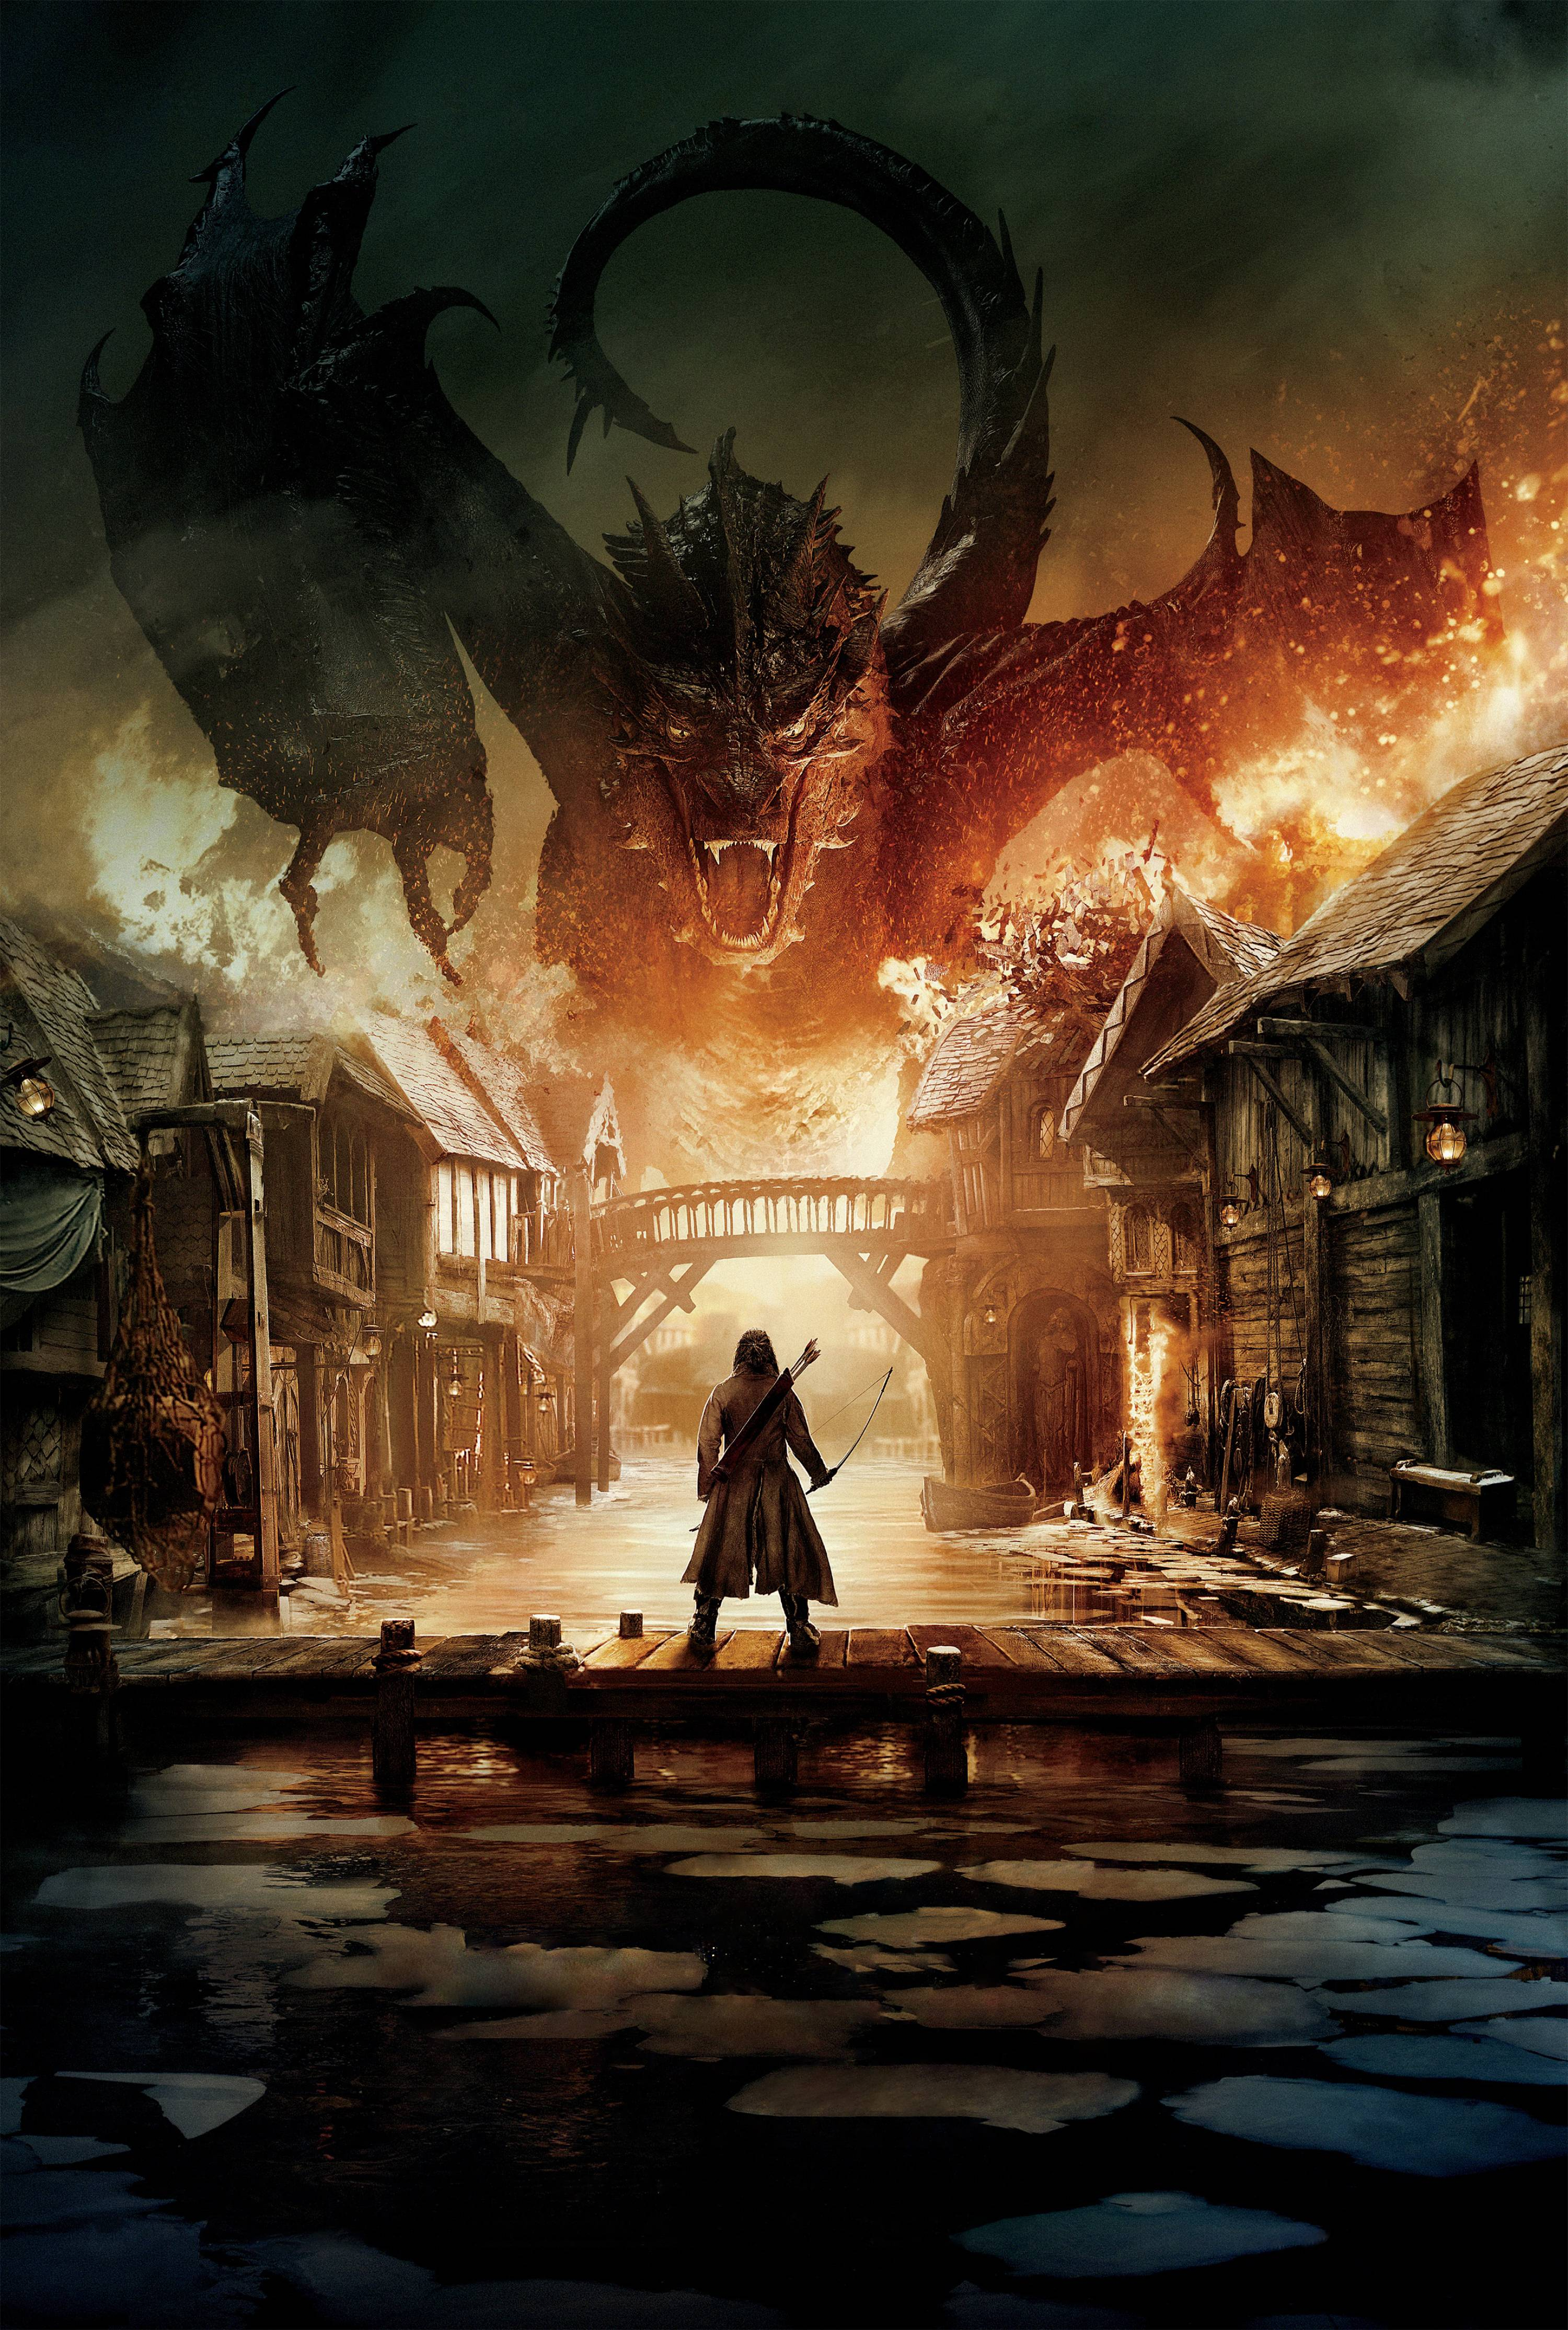 Misry6/Pure Evil Removal Proposal: Smaug